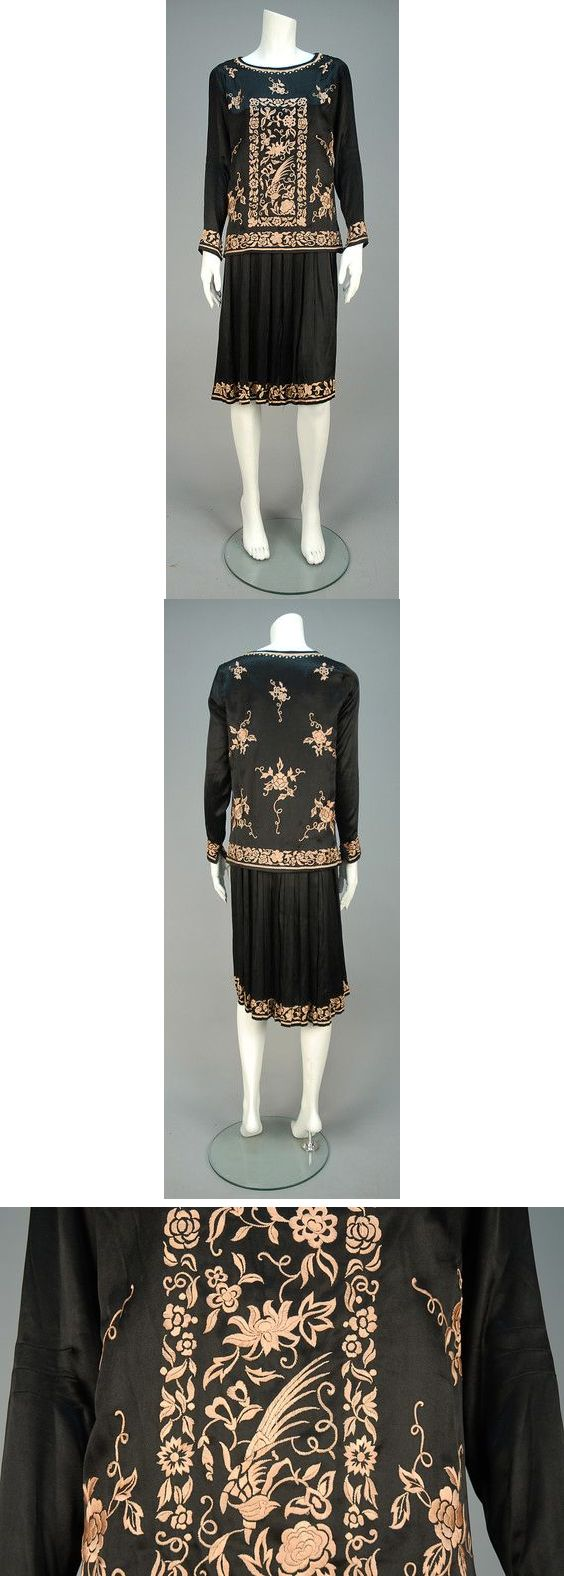 Day dress, 1920s. 2-piece black silk having tunic embroidered in a pale pink Orientalist floral with birds, long sleeve with five self buttons at cuff, worn over a sleeveless dress with pleated skirt embroidered at hem. B-36, low W-38, L-42. $330